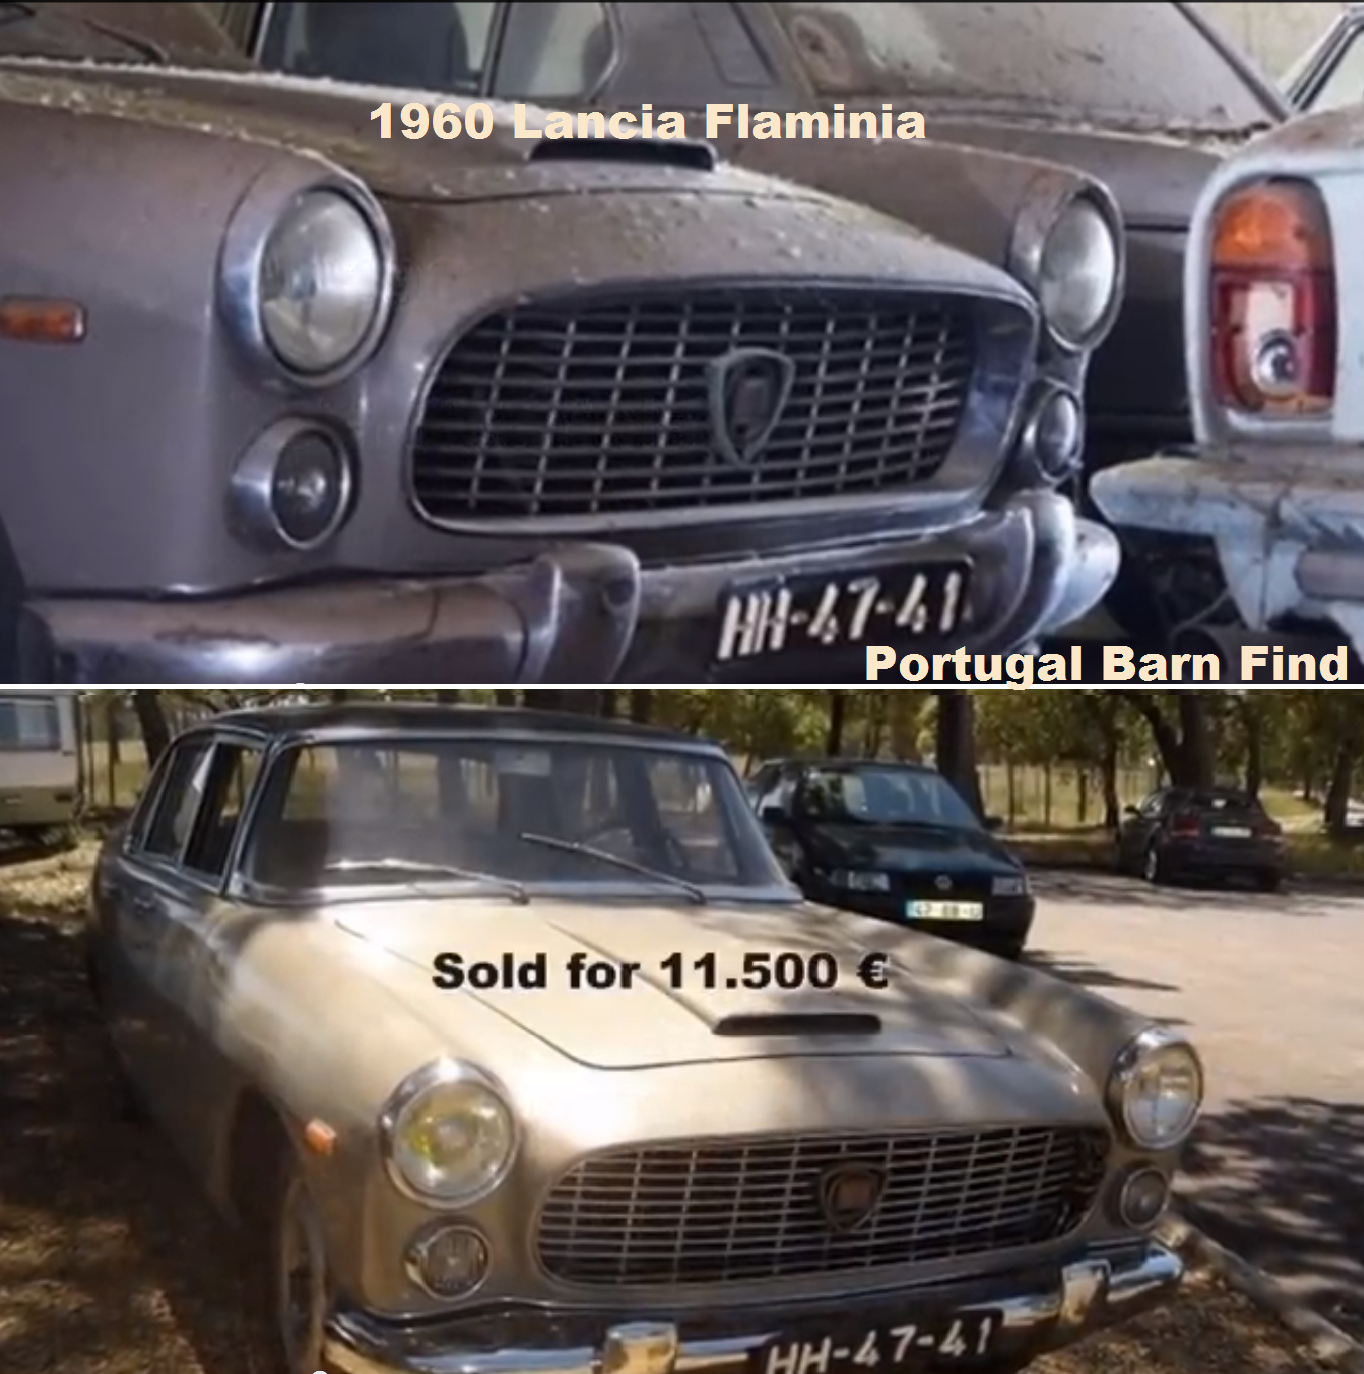 Part Of The Portugal Barn Find